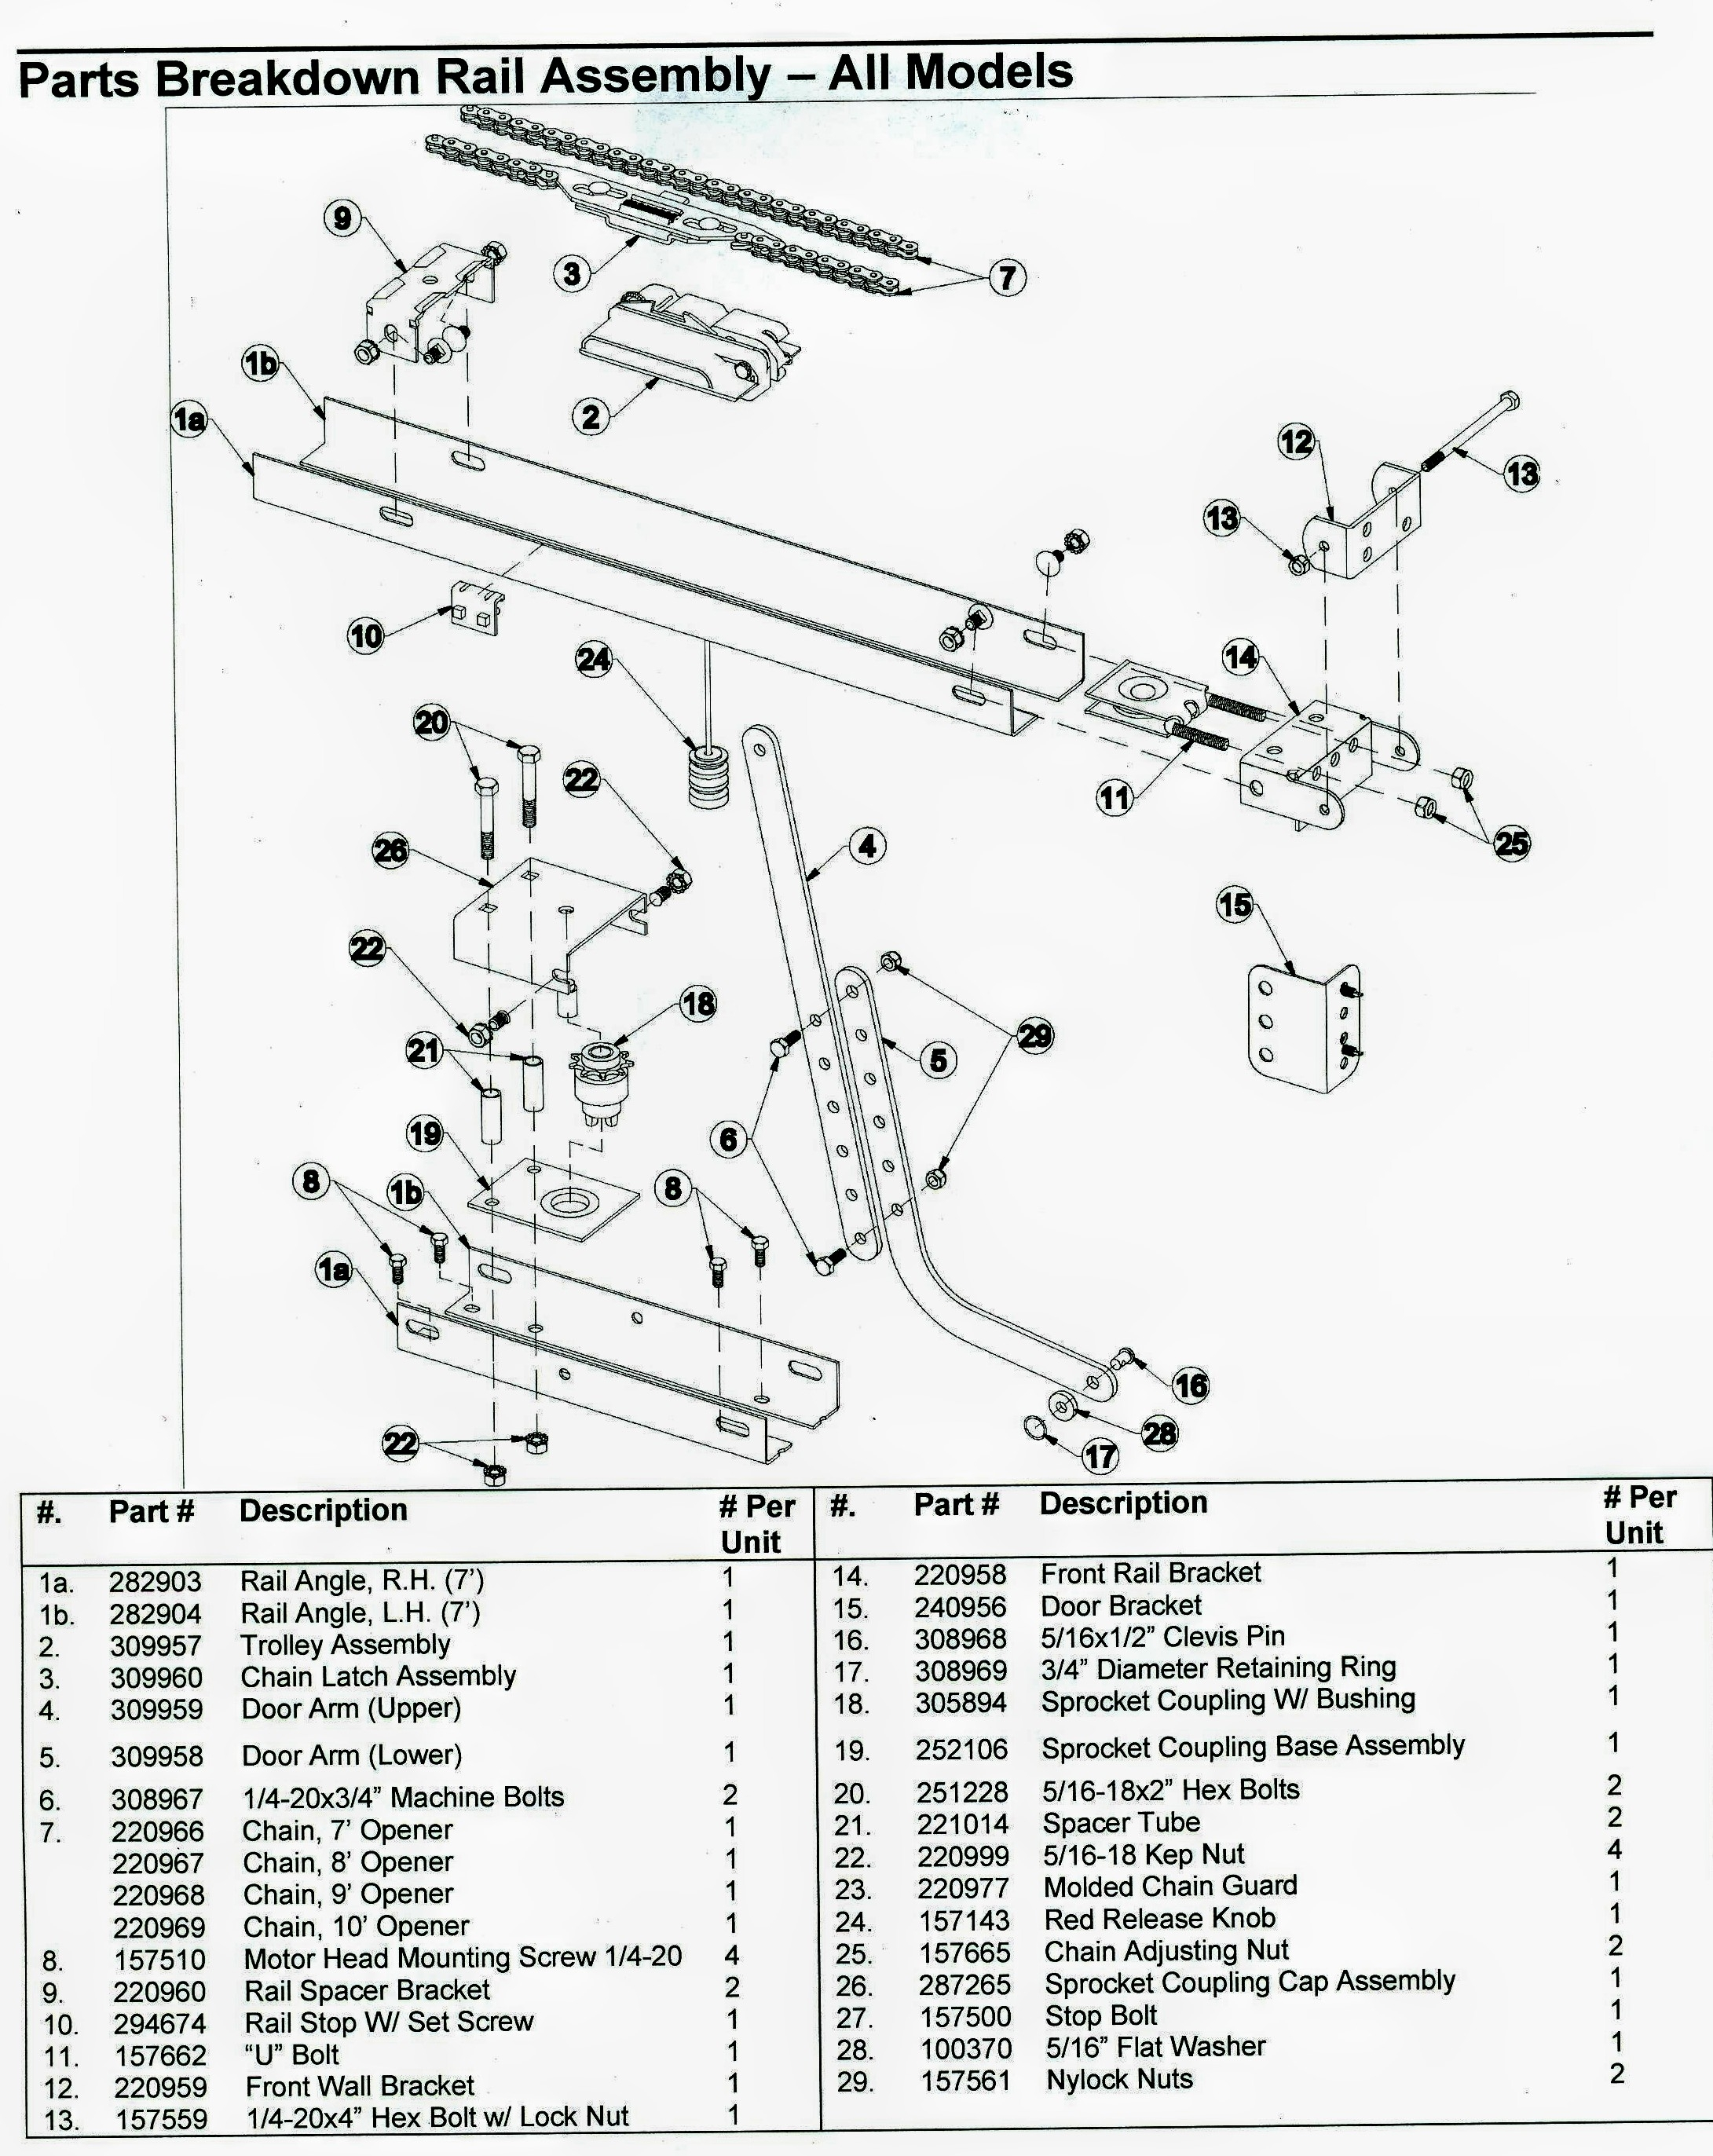 wiring diagram for liftmaster garage door opener on free throughout chamberlain garage door opener parts diagram wiring diagram for liftmaster garage door opener on free garage wiring diagram at bakdesigns.co